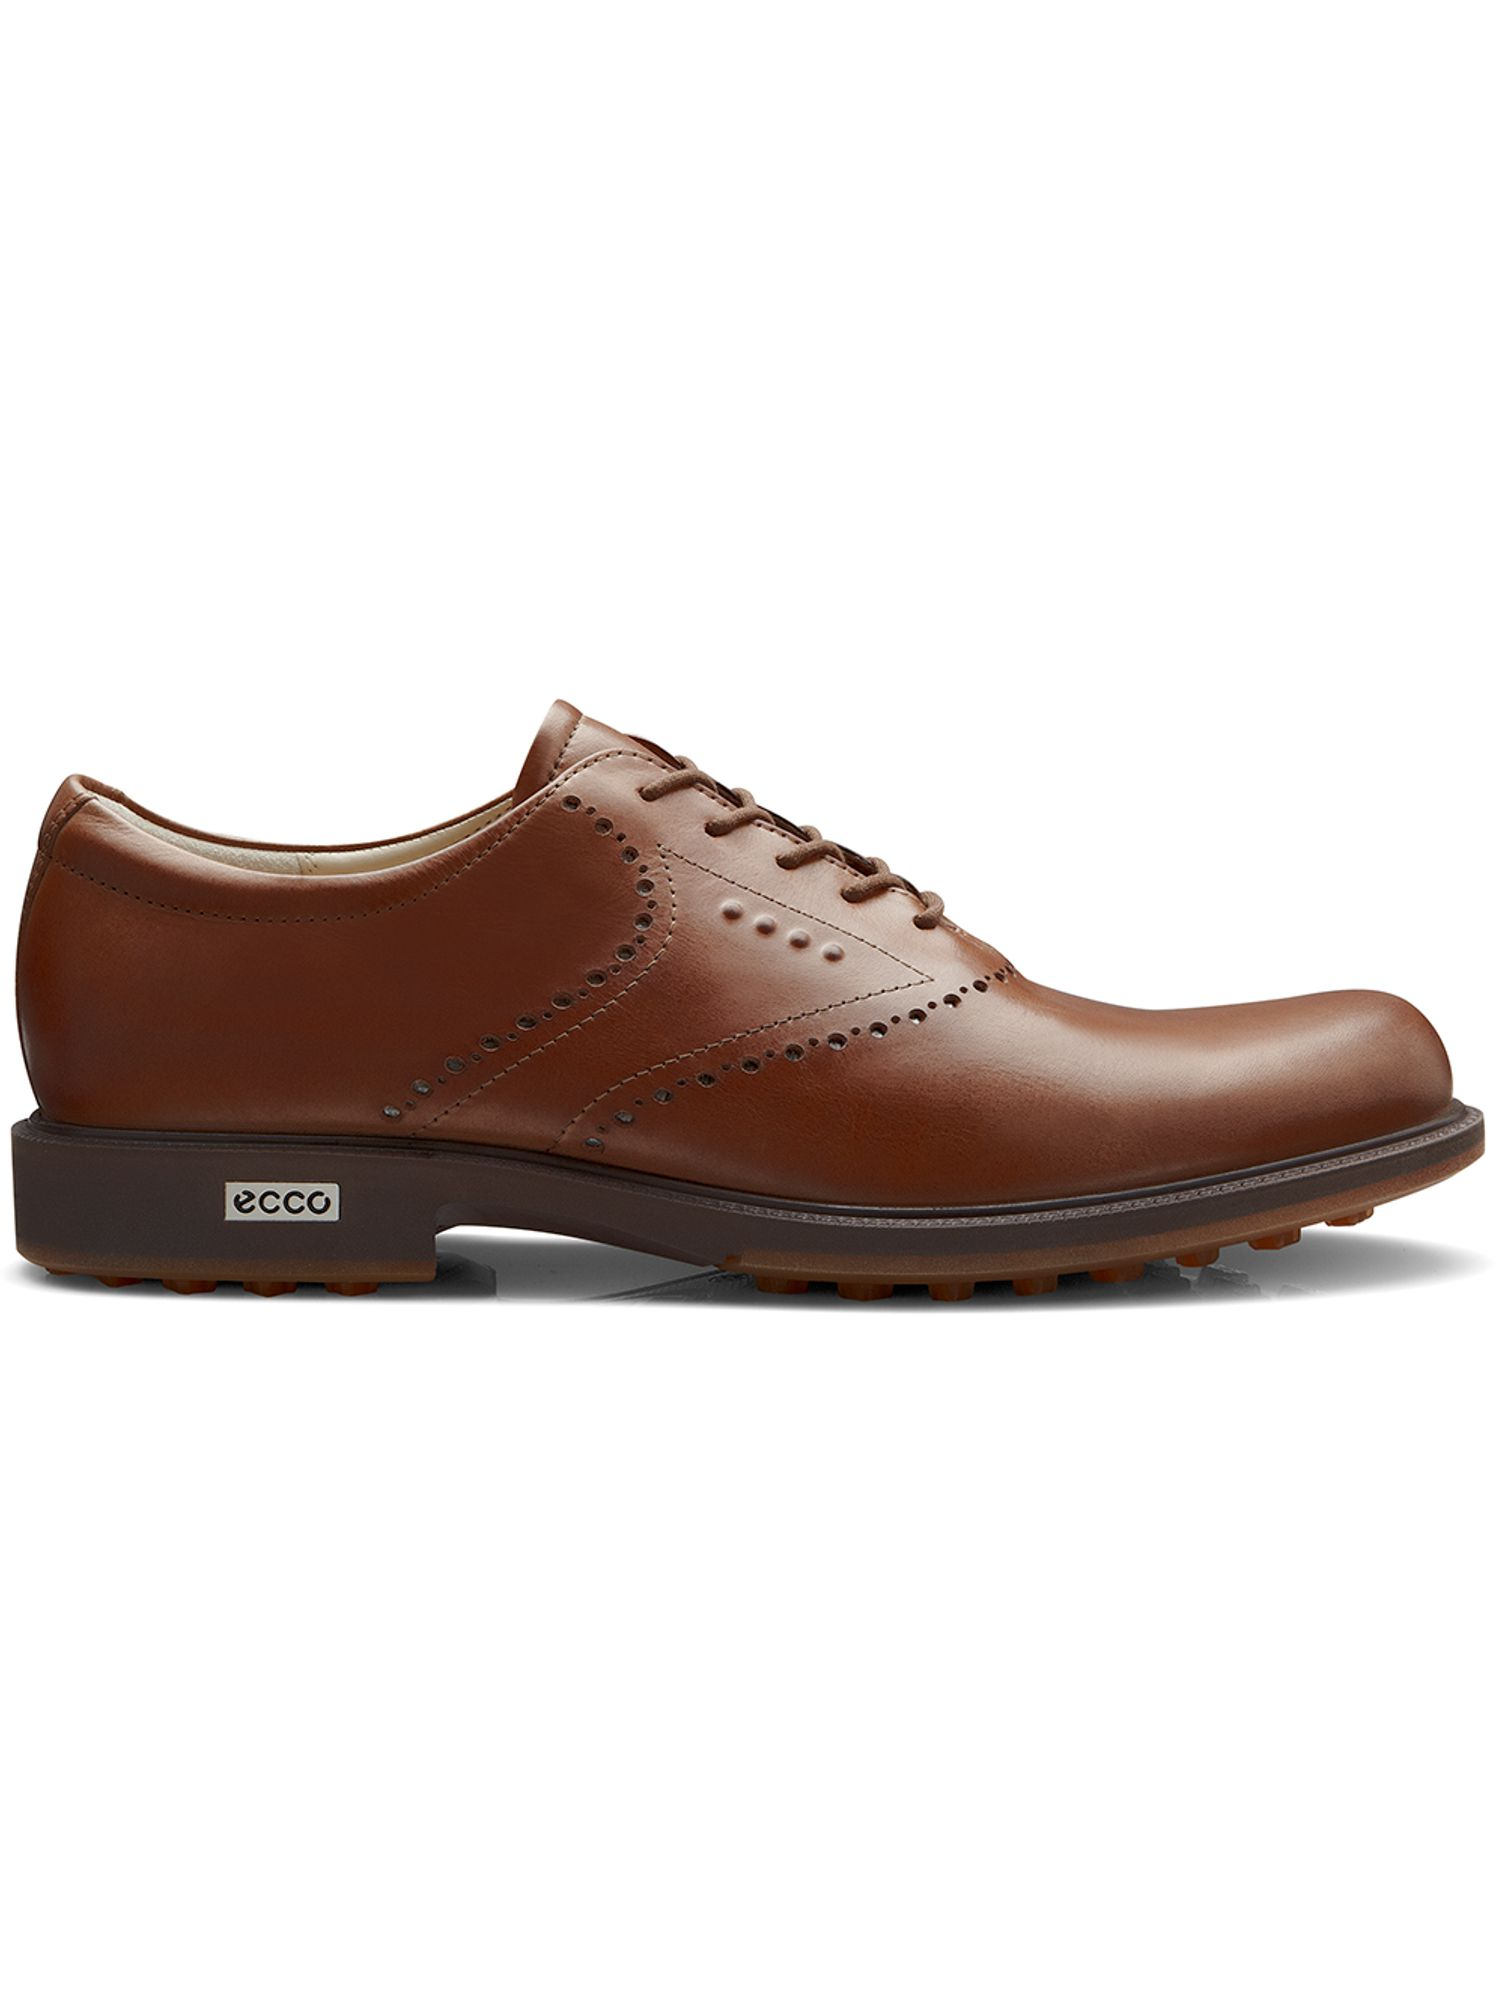 Ecco Golf Shoes Brown